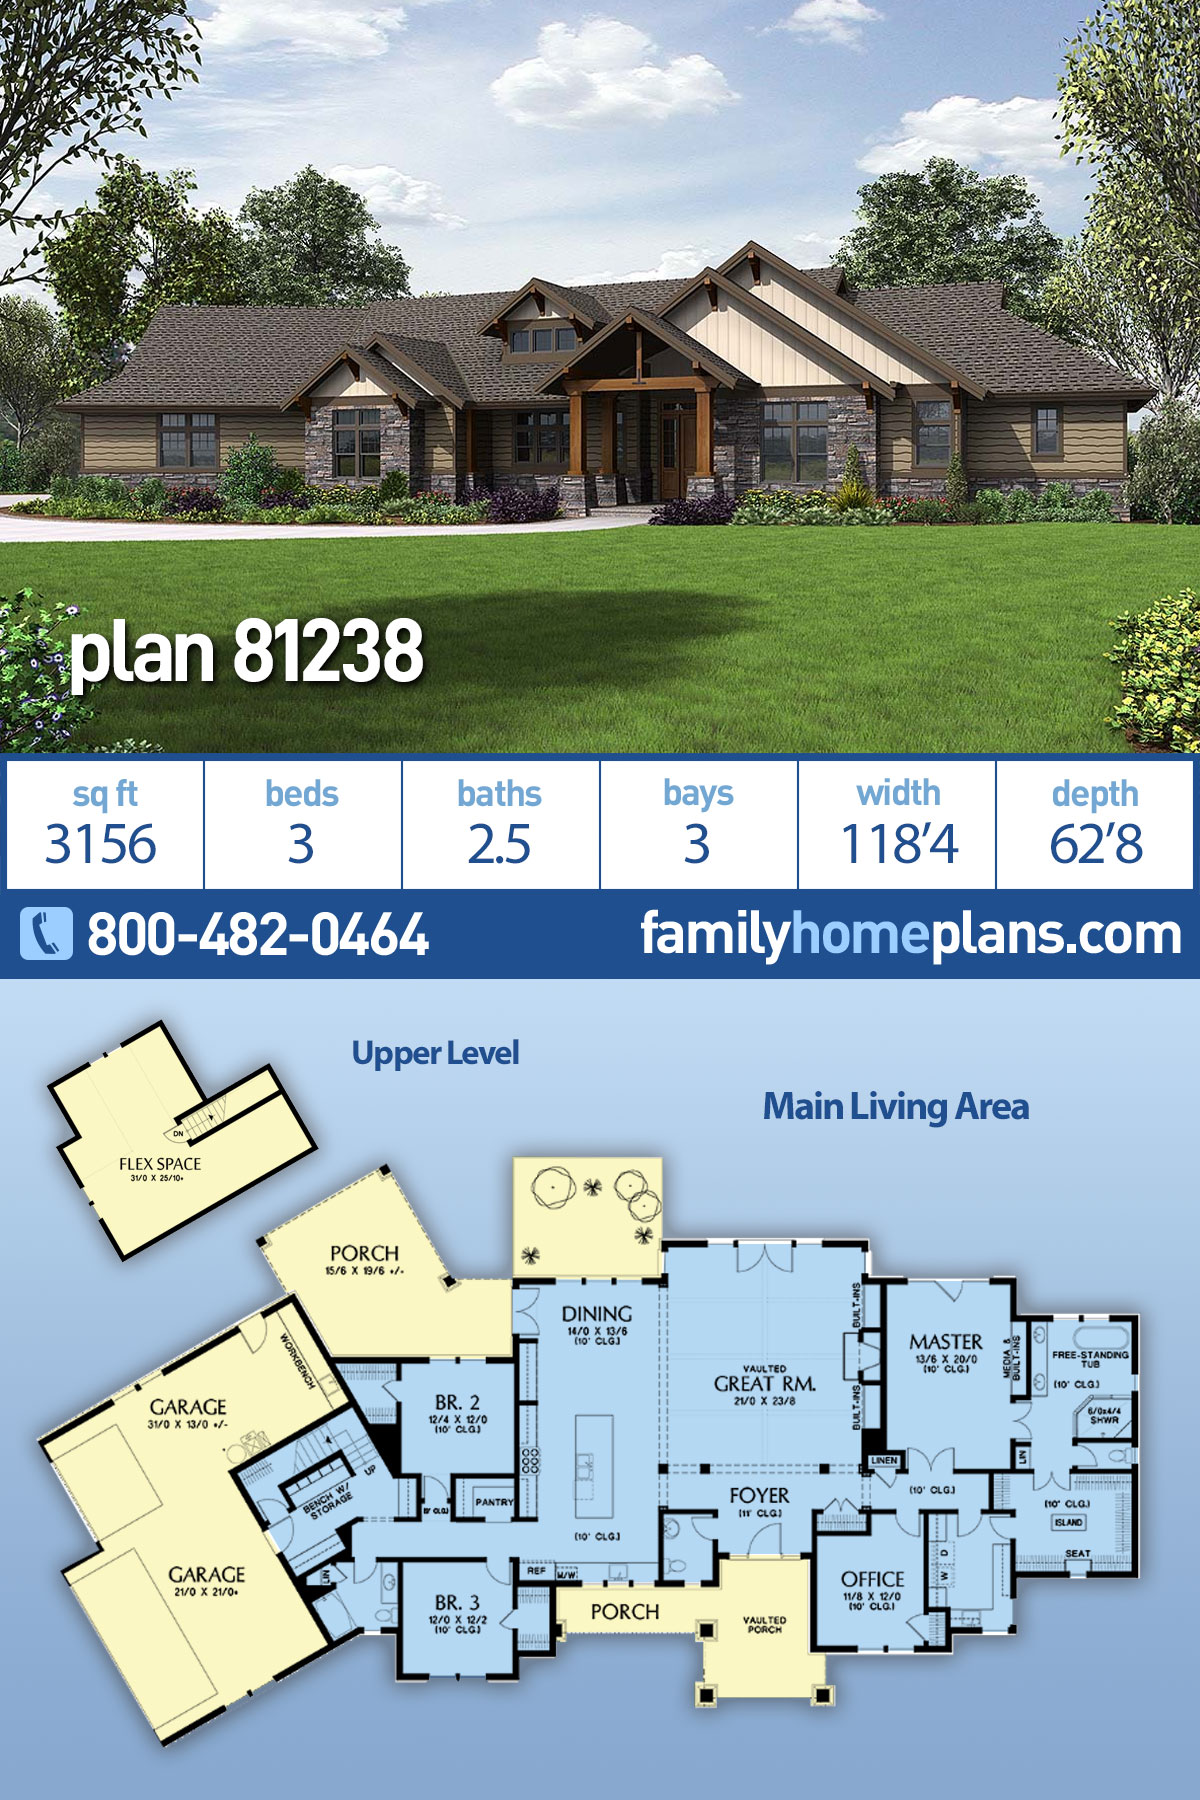 Craftsman House Plan 81238 with 3 Beds, 3 Baths, 3 Car Garage